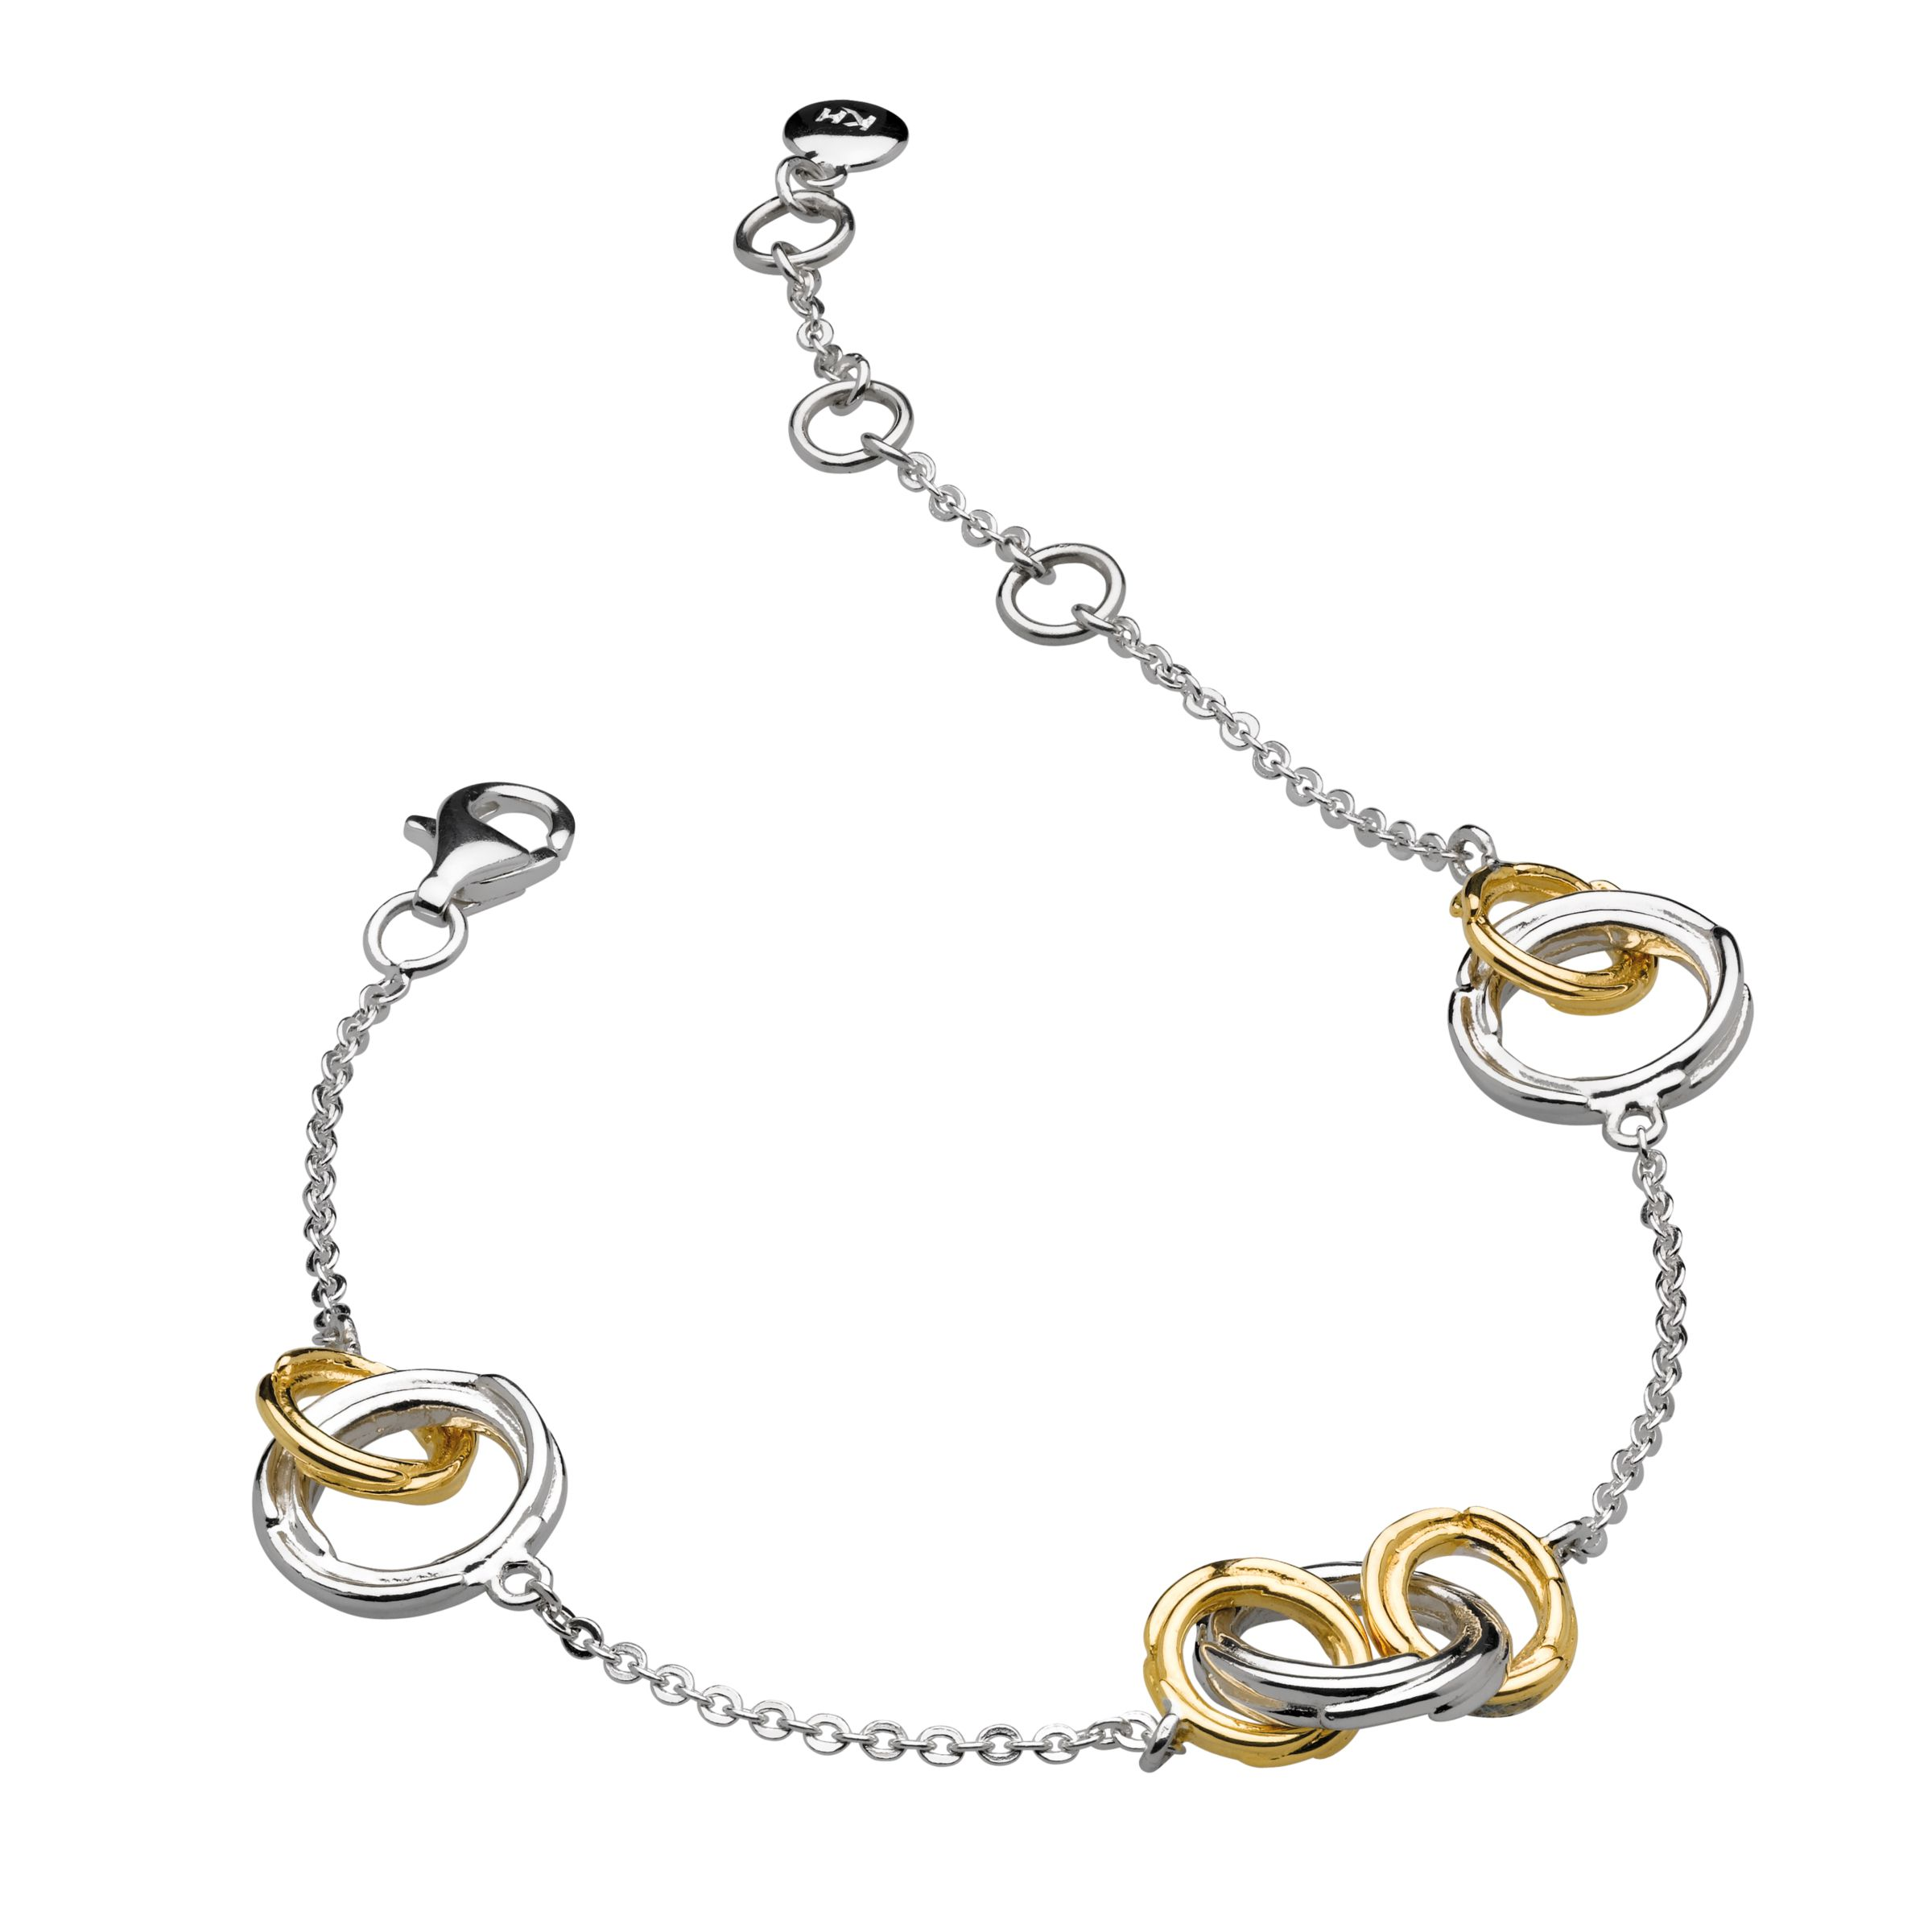 Kit Heath Kit Heath 18ct Gold Plated Sterling Silver Cocoon Link Chain Bracelet, Gold/Silver